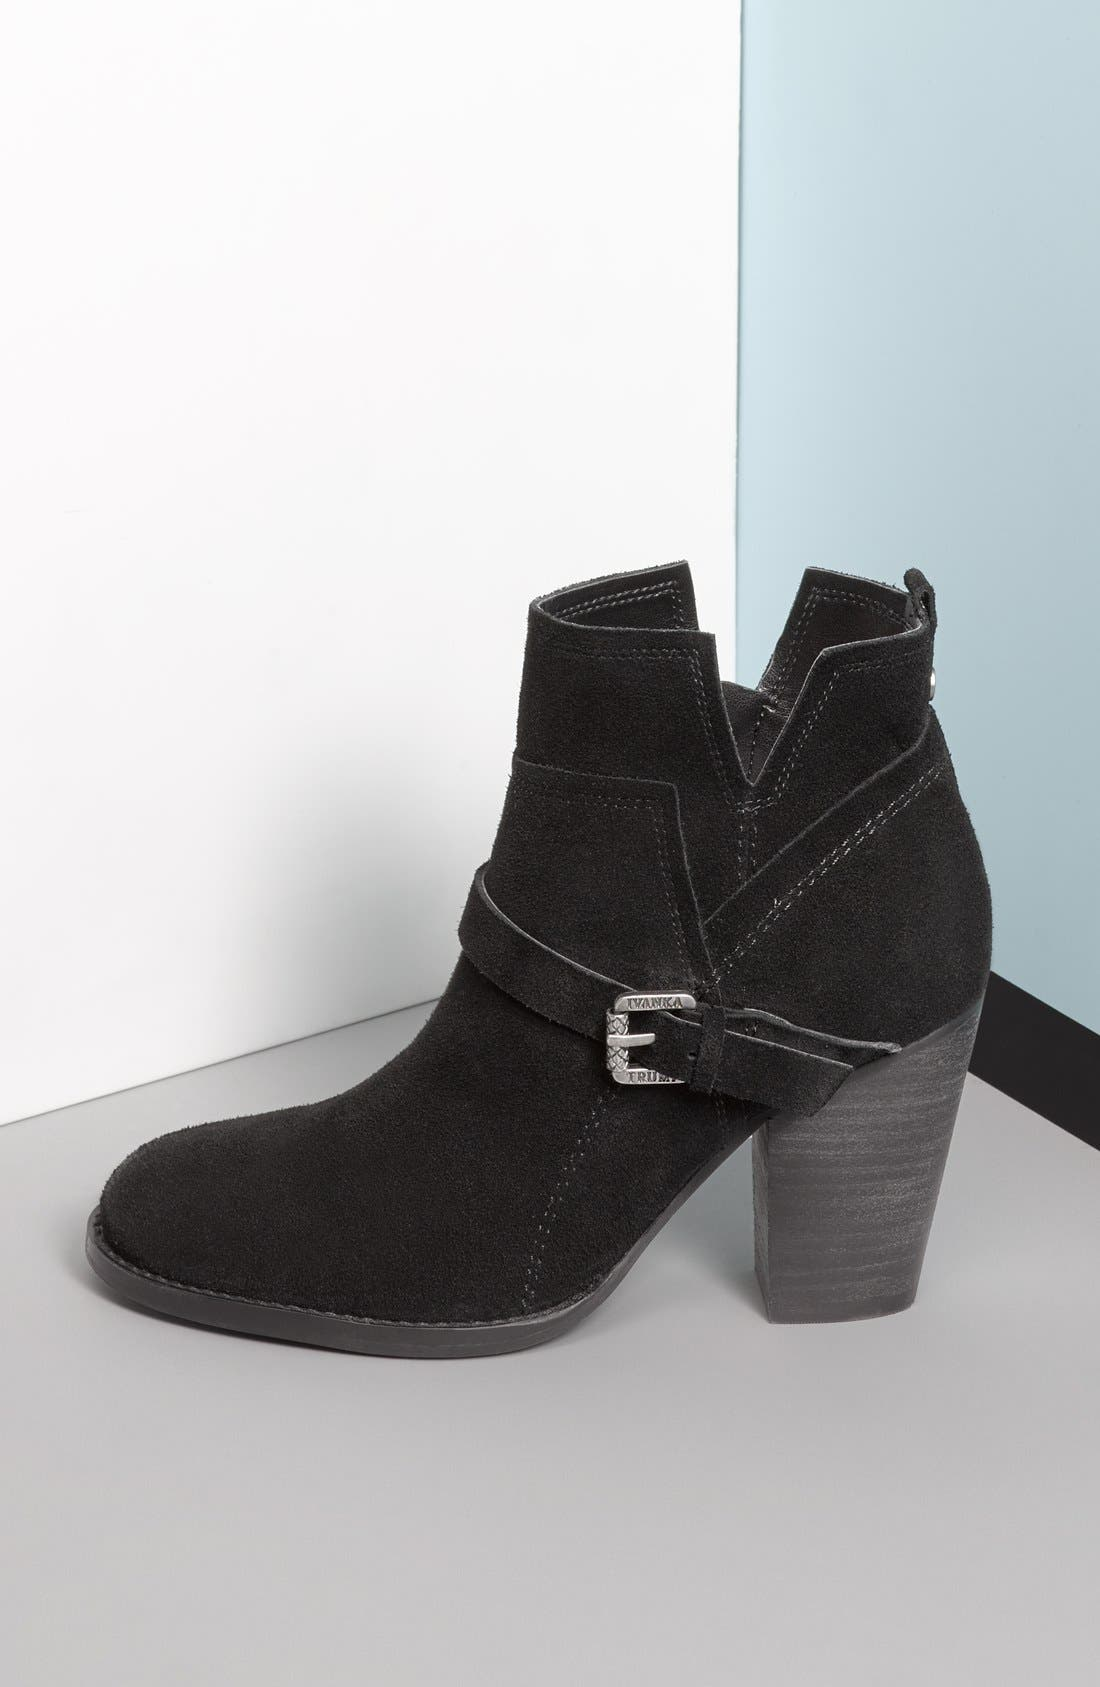 IVANKA TRUMP,                             'Frankly' Belted Round Toe Bootie,                             Alternate thumbnail 6, color,                             001